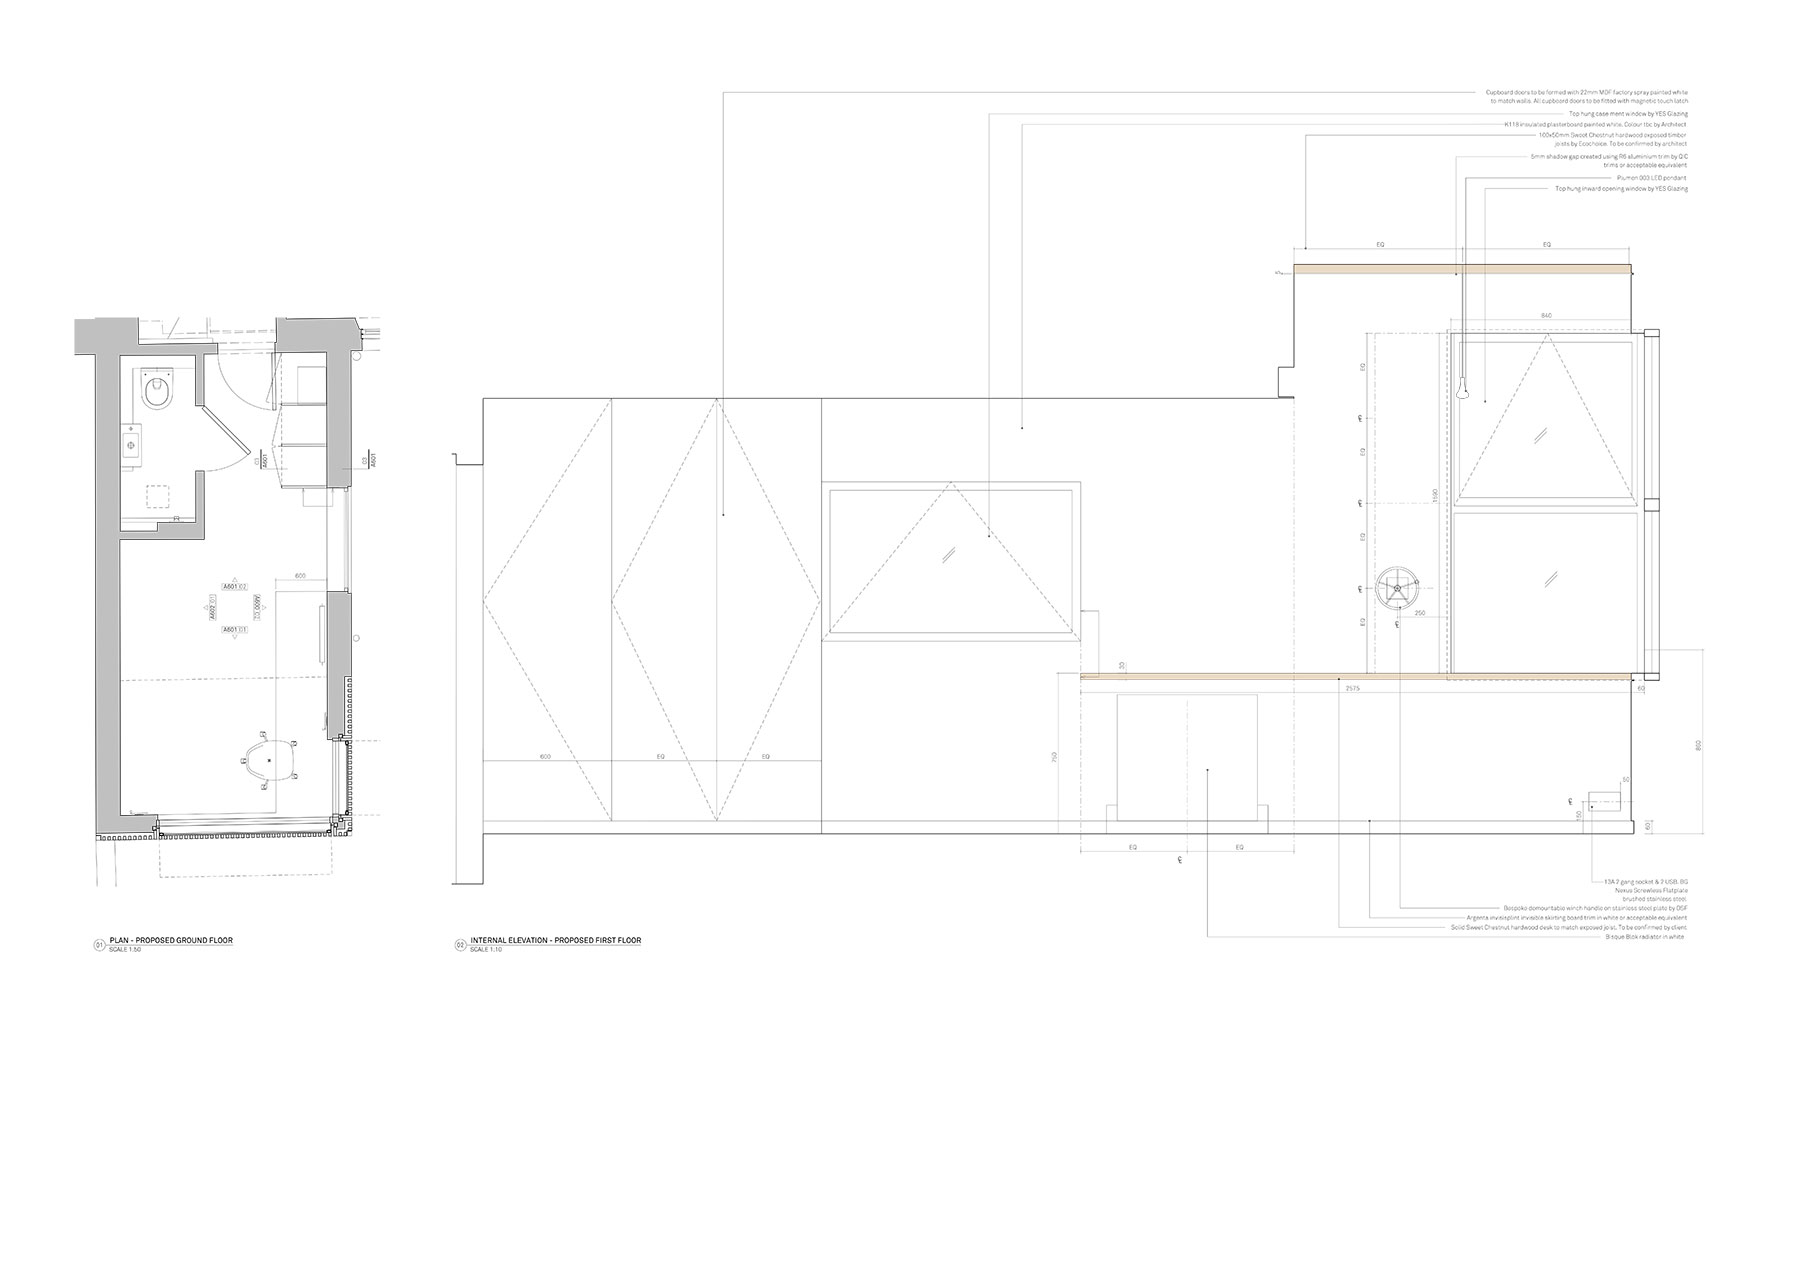 A15-003-600-Internal-Elevations---Sheet-01.jpg